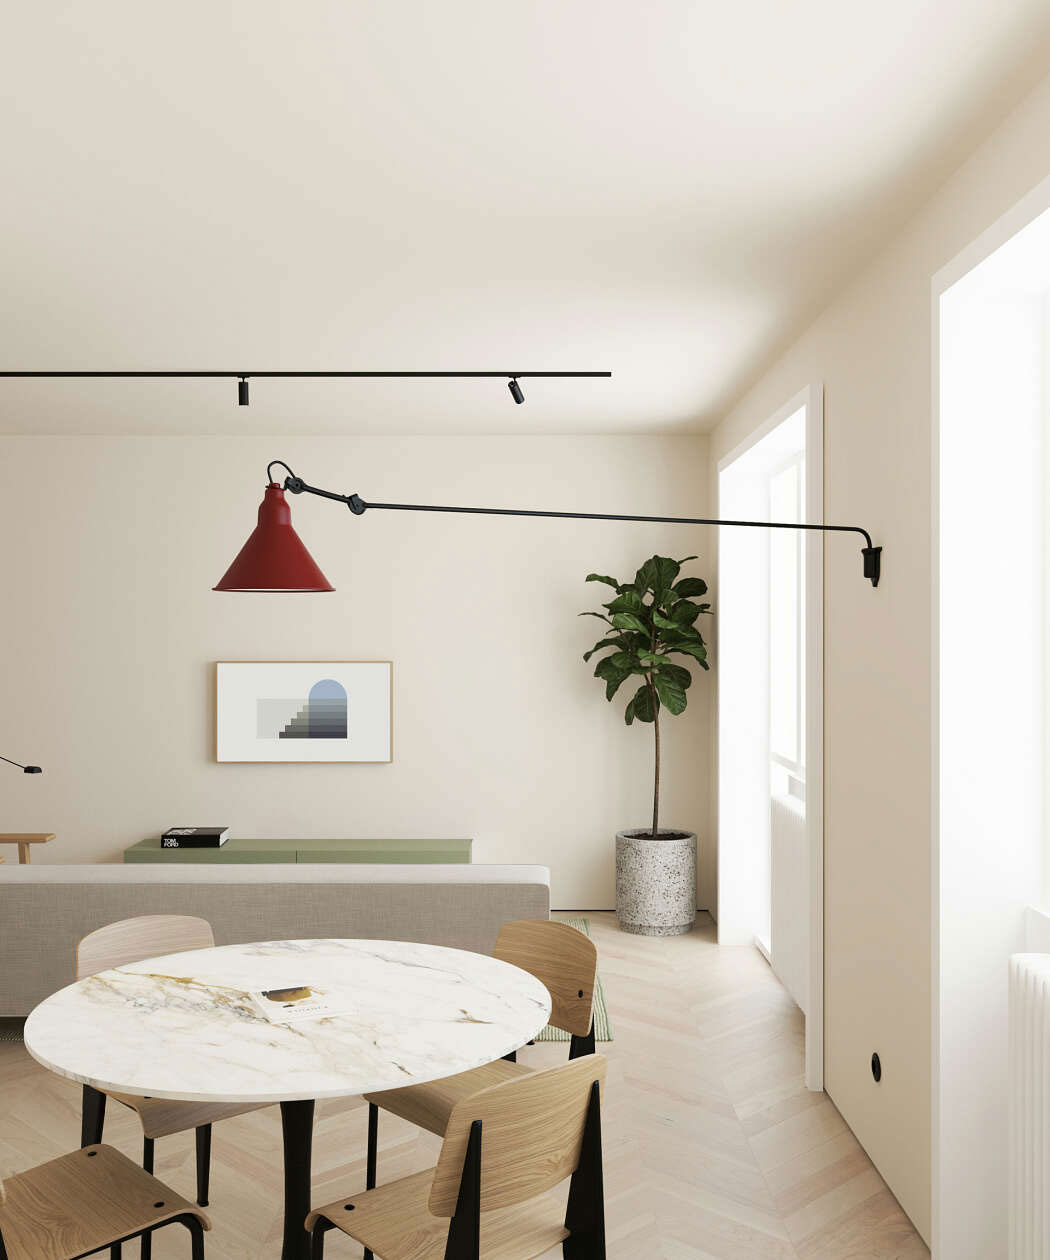 Minimalism Interior Design: This Modern Scandinavian-Style Apartment Is A Lesson In